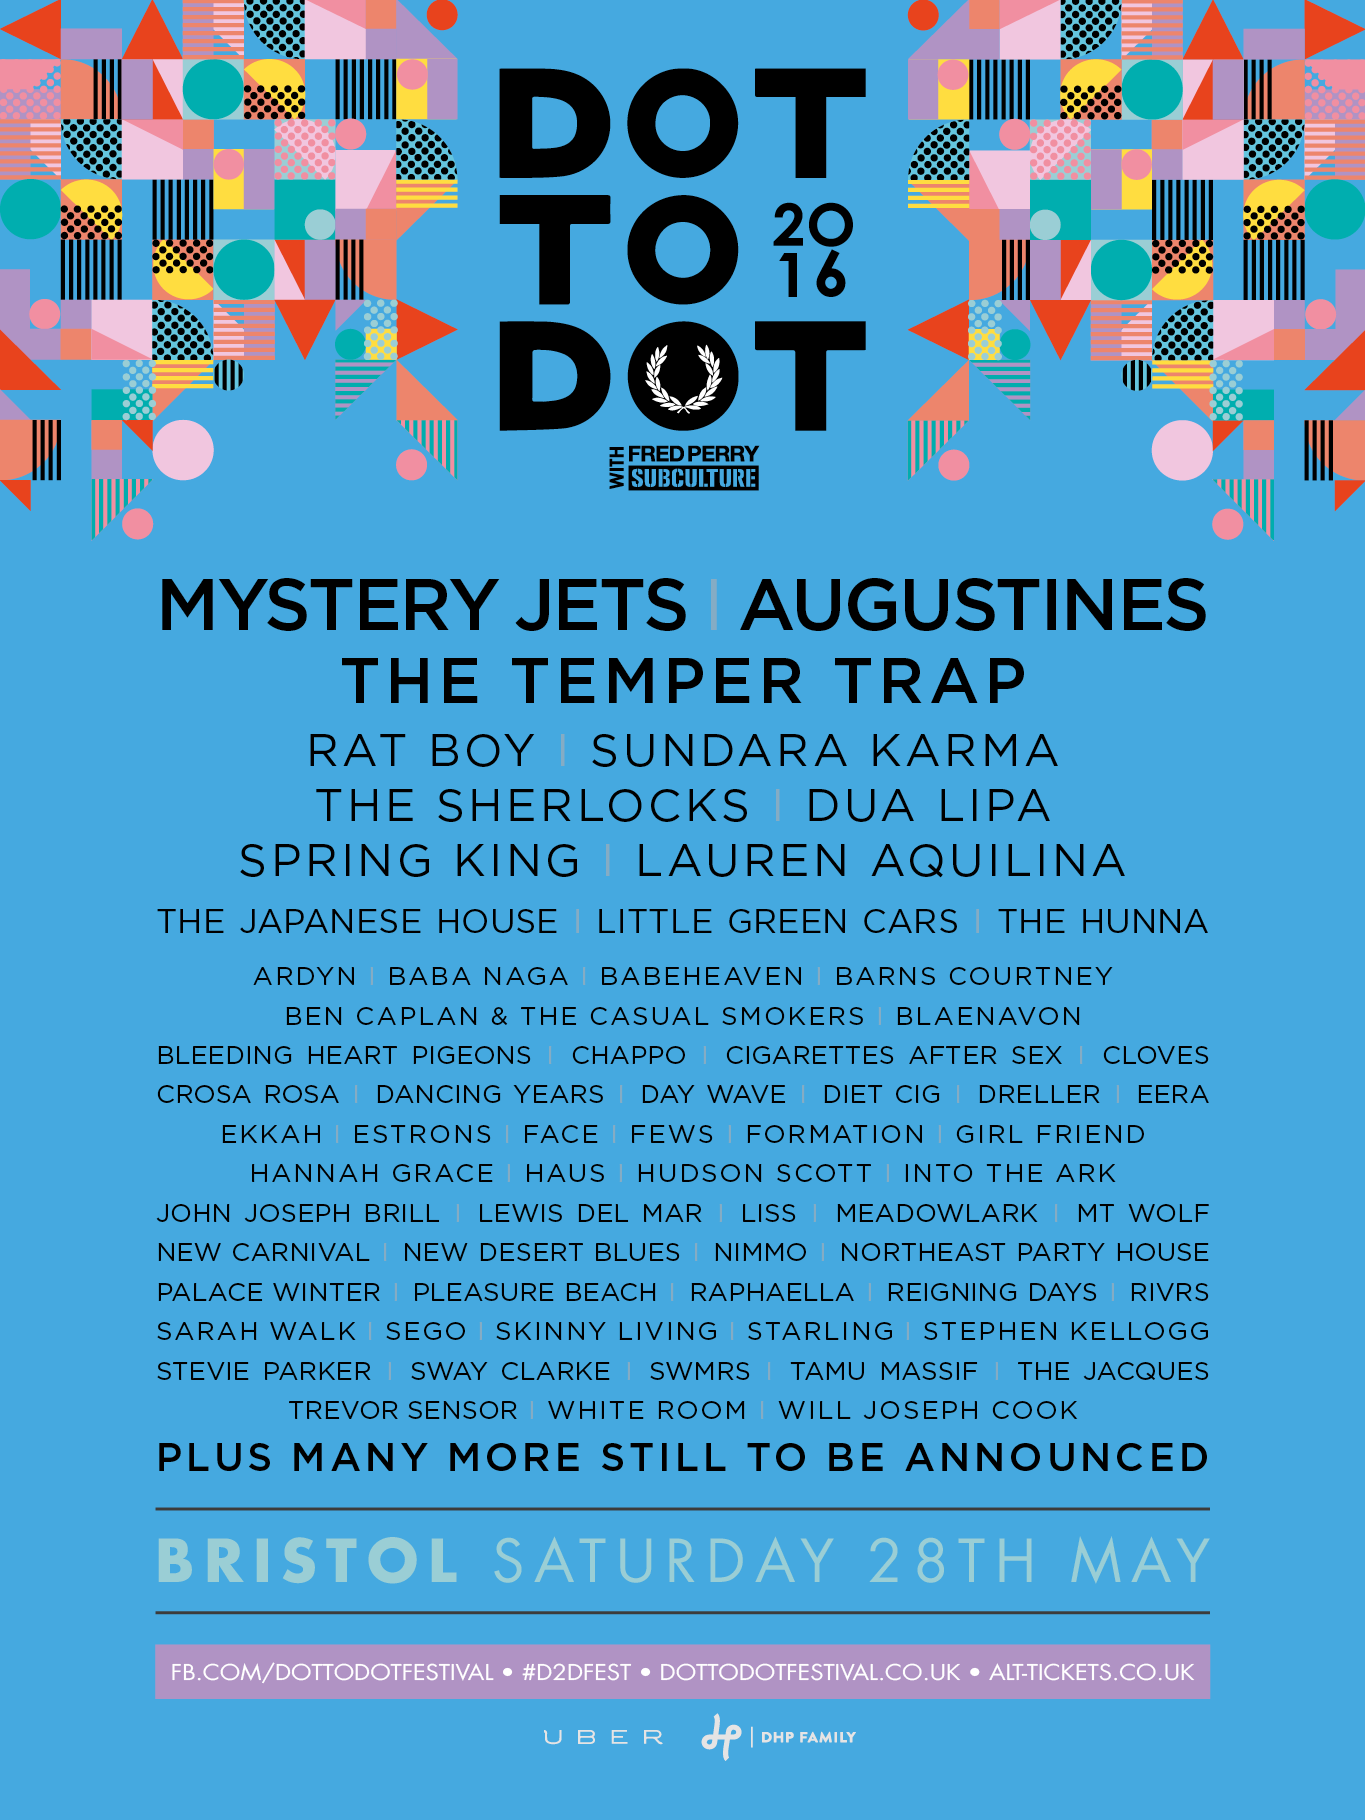 Dot to Dot Bristol 2016